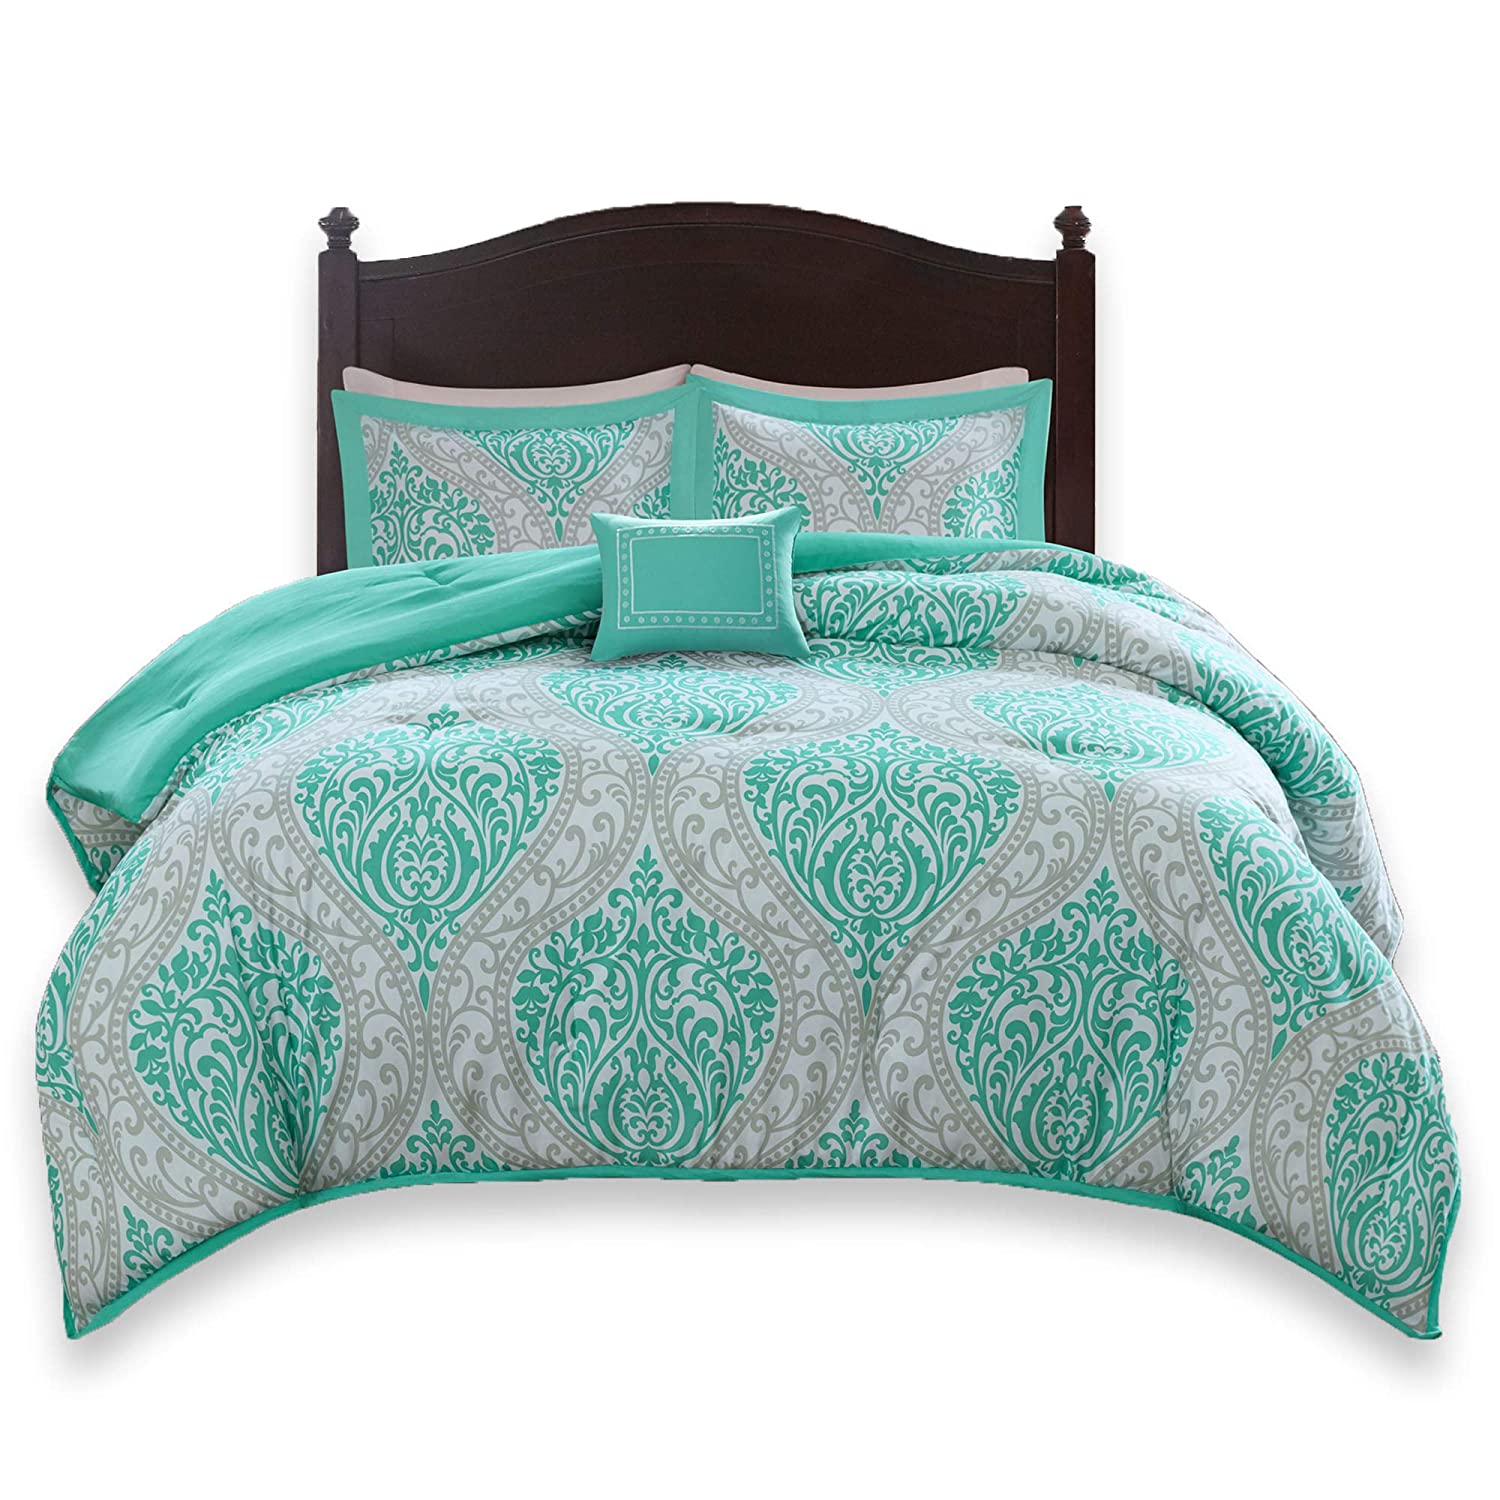 Comfort Spaces Coco 3 Piece Comforter Set Ultra Soft Printed Damask Pattern Hypoallergenic Bedding, Twin/Twin XL, Teal-Grey